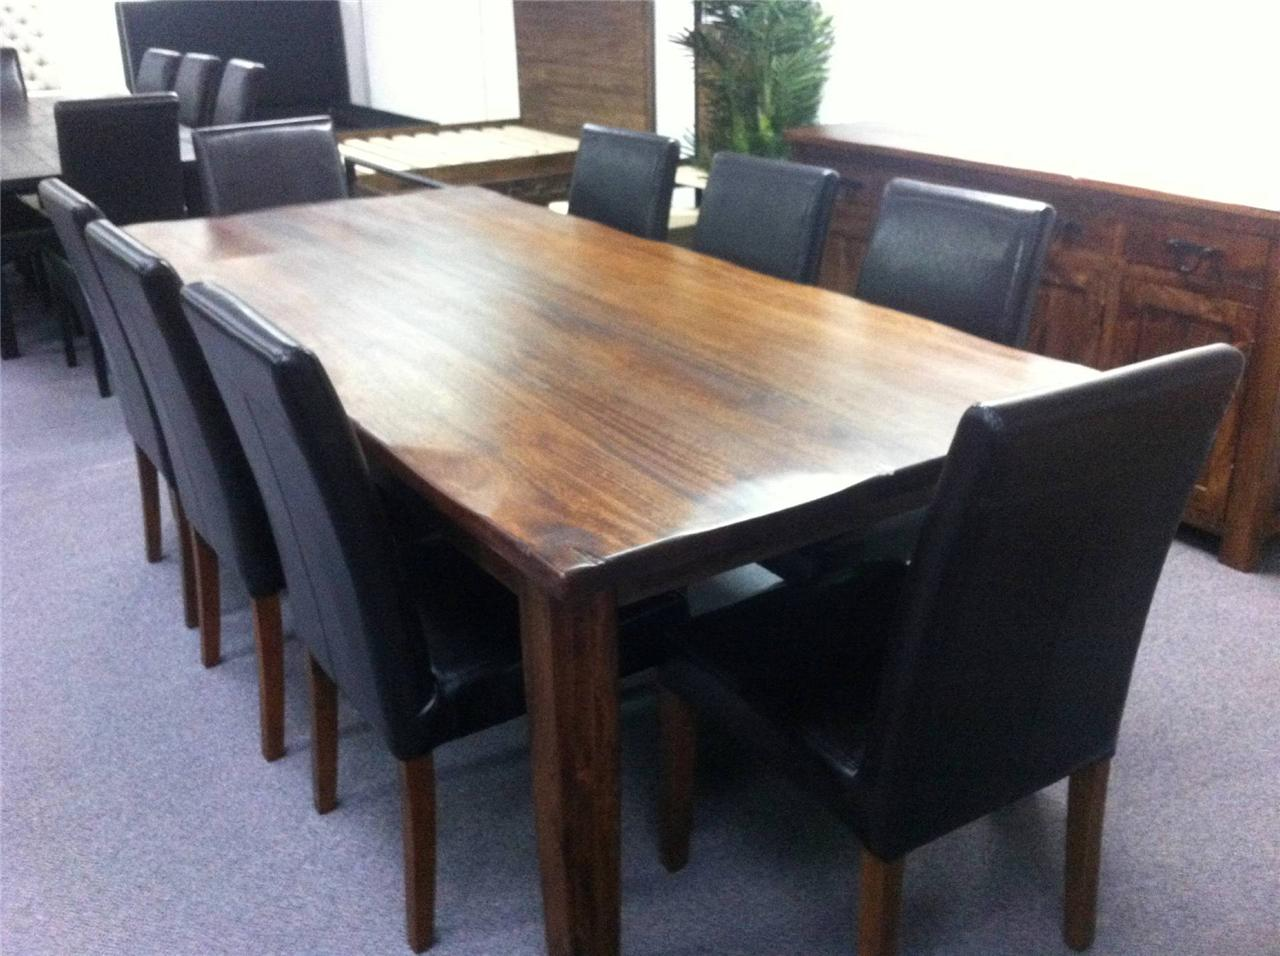 NEW-Bayview-Solid-Hardwood-Timber-Table-8-Chairs-9-Piece-Dining-Set-Package